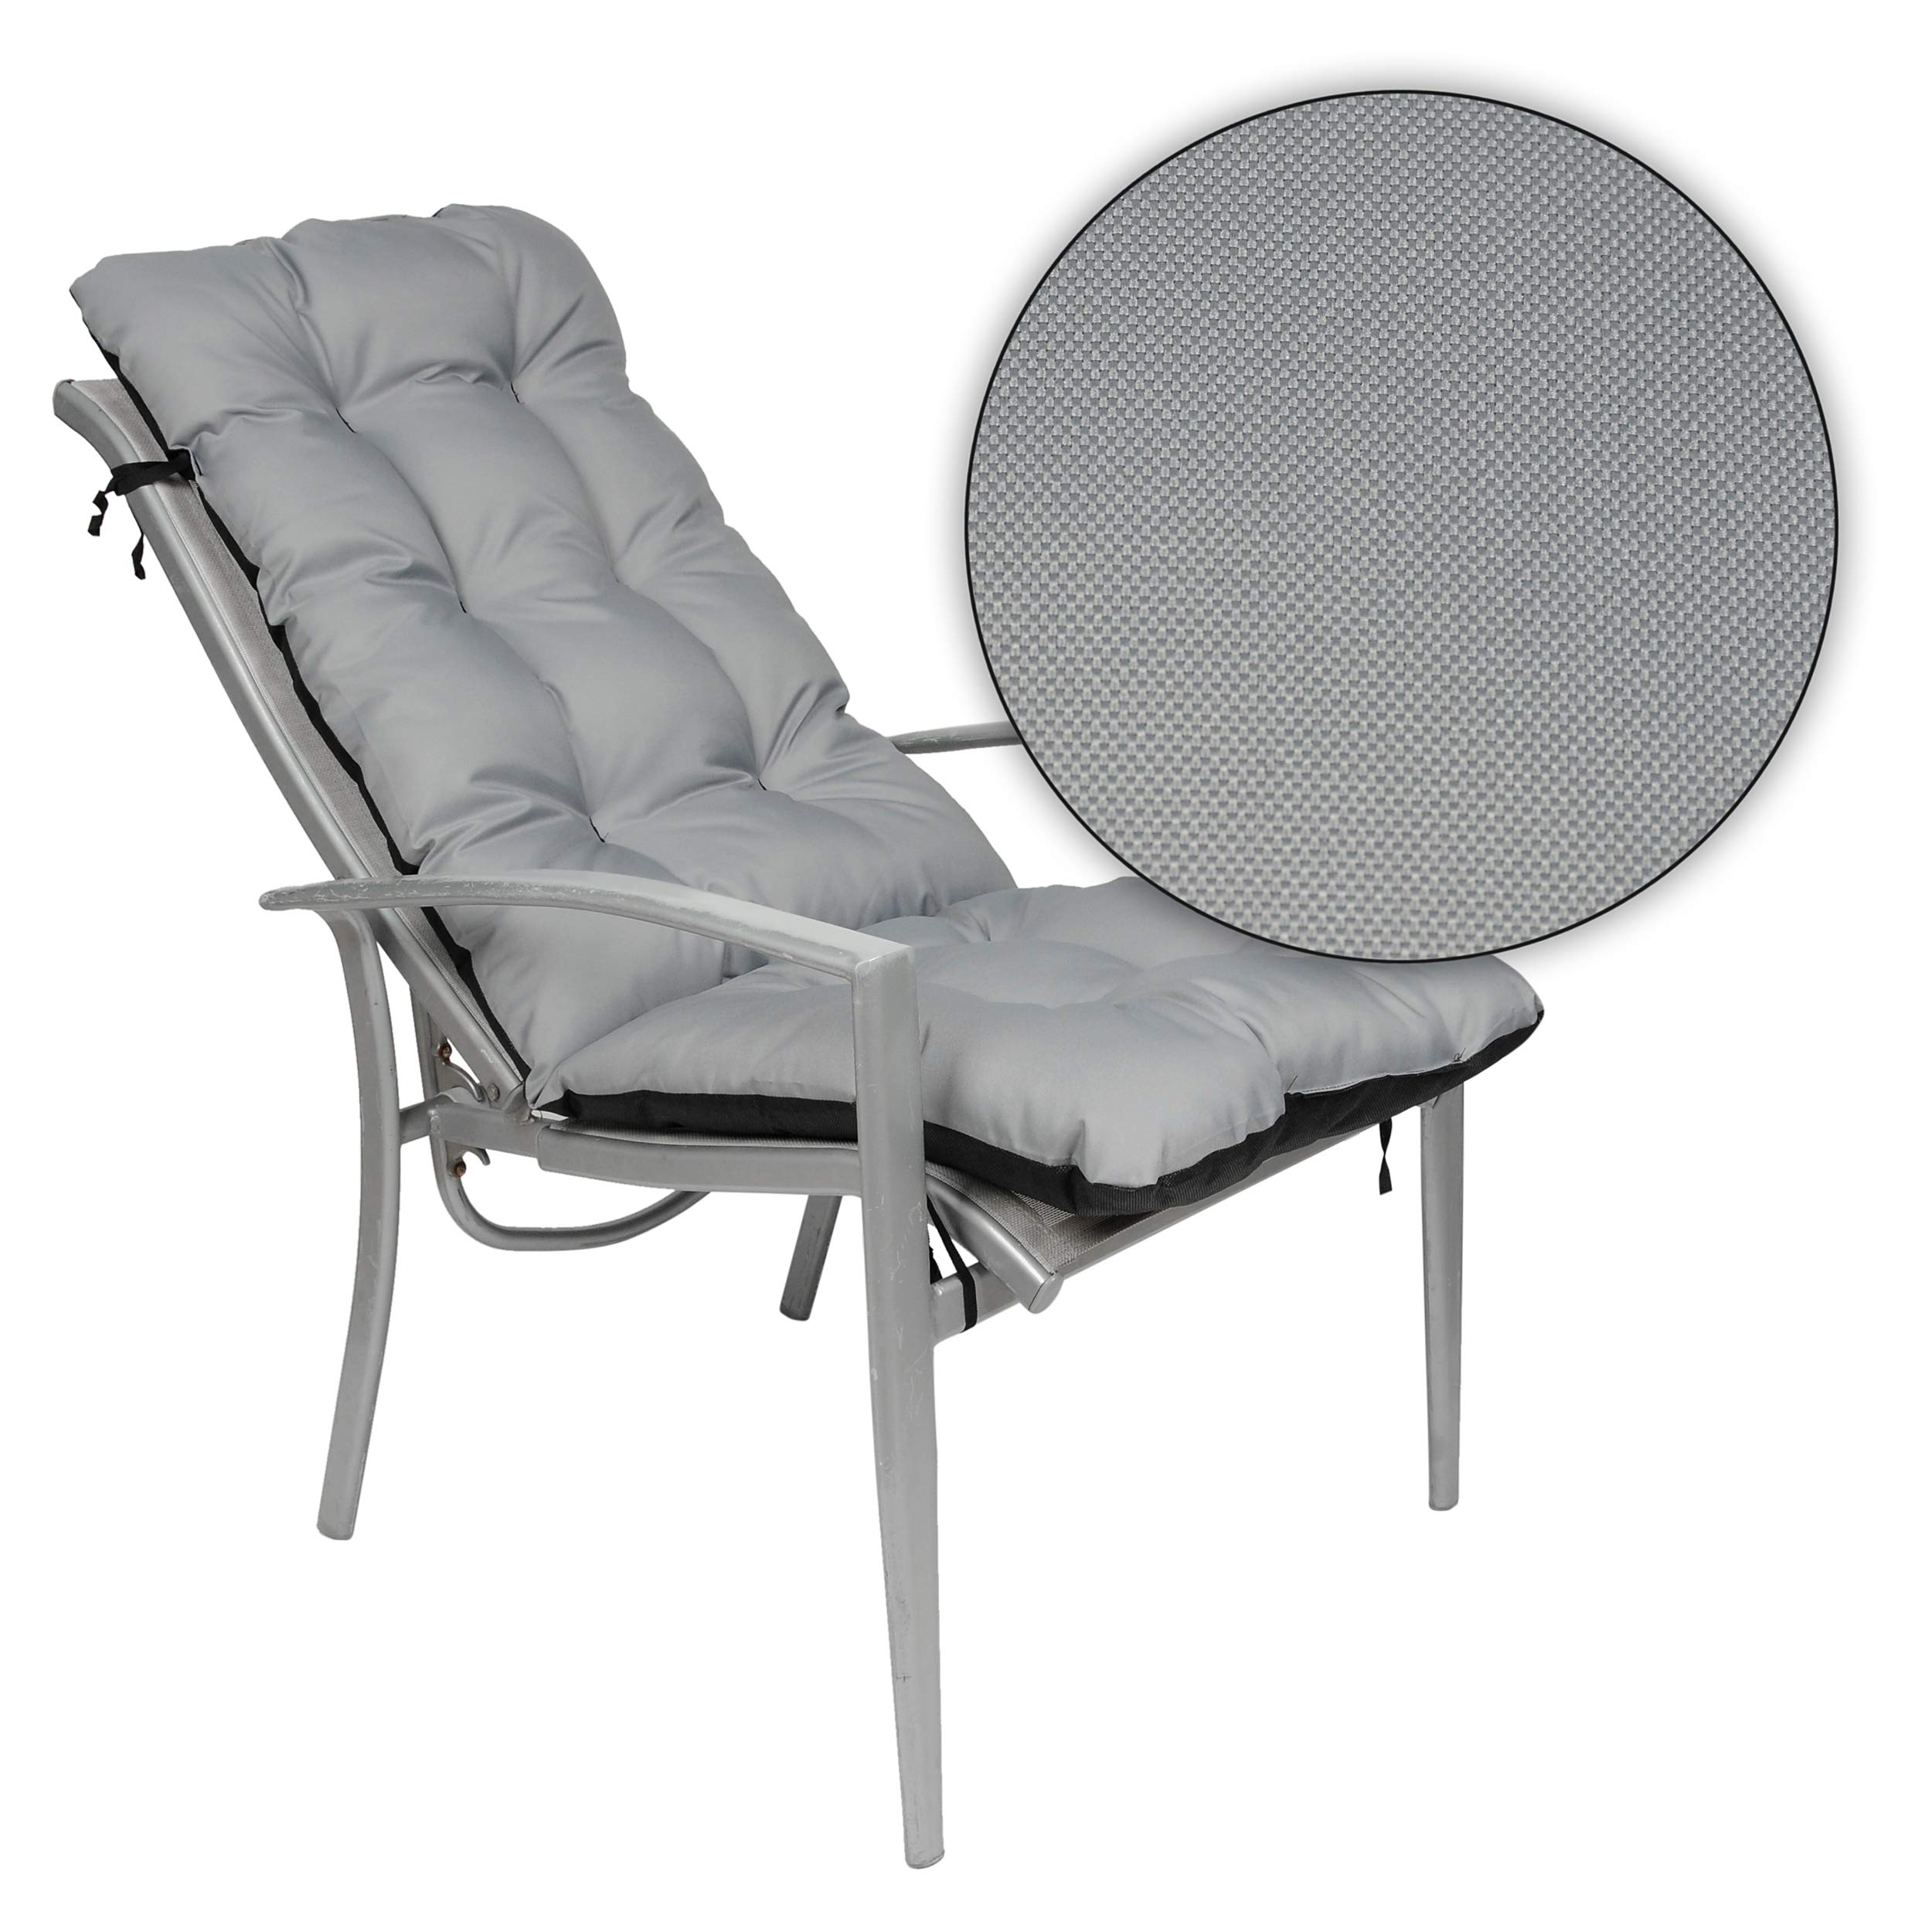 Outdoor//Indoor Relaxer Chair Pillow Seatings Beige Waterproof 48x123 cm Seat cover for Sunbeds Loungers SuperKissen24 Garden Chairs Sun Lounger Cushion Seat Pad